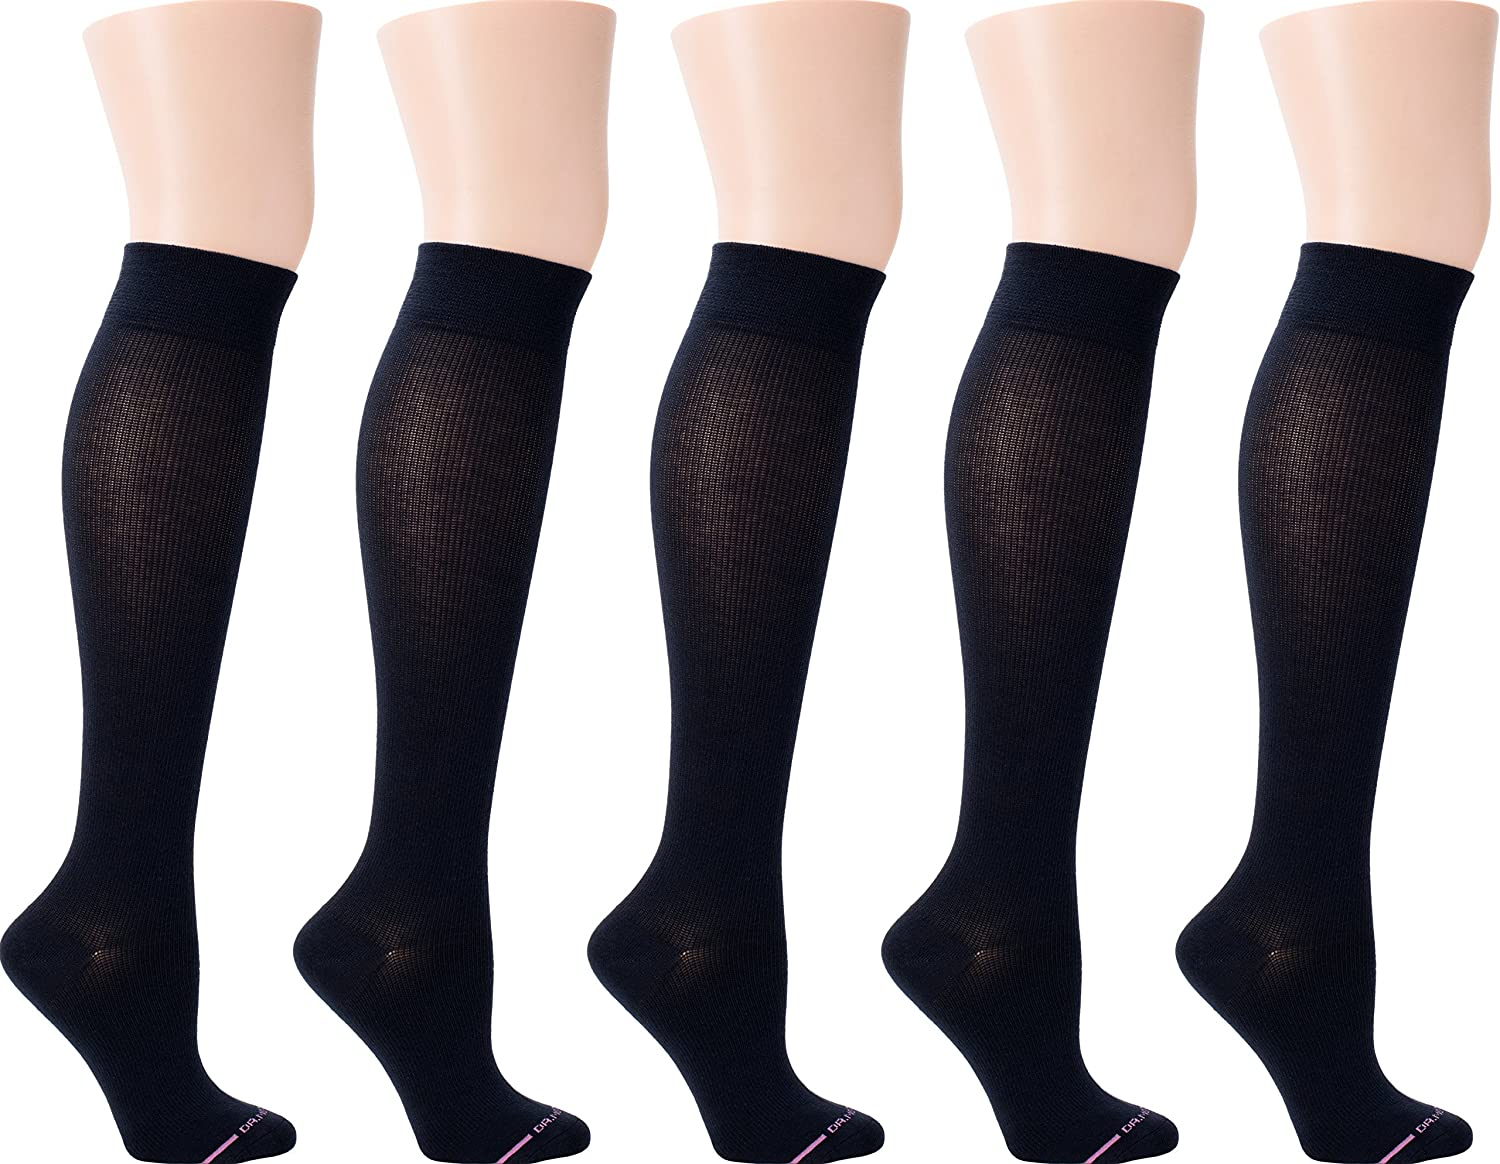 Dr. Motion Women's Compression Socks 5pair Pack (Cotton Solid Black)